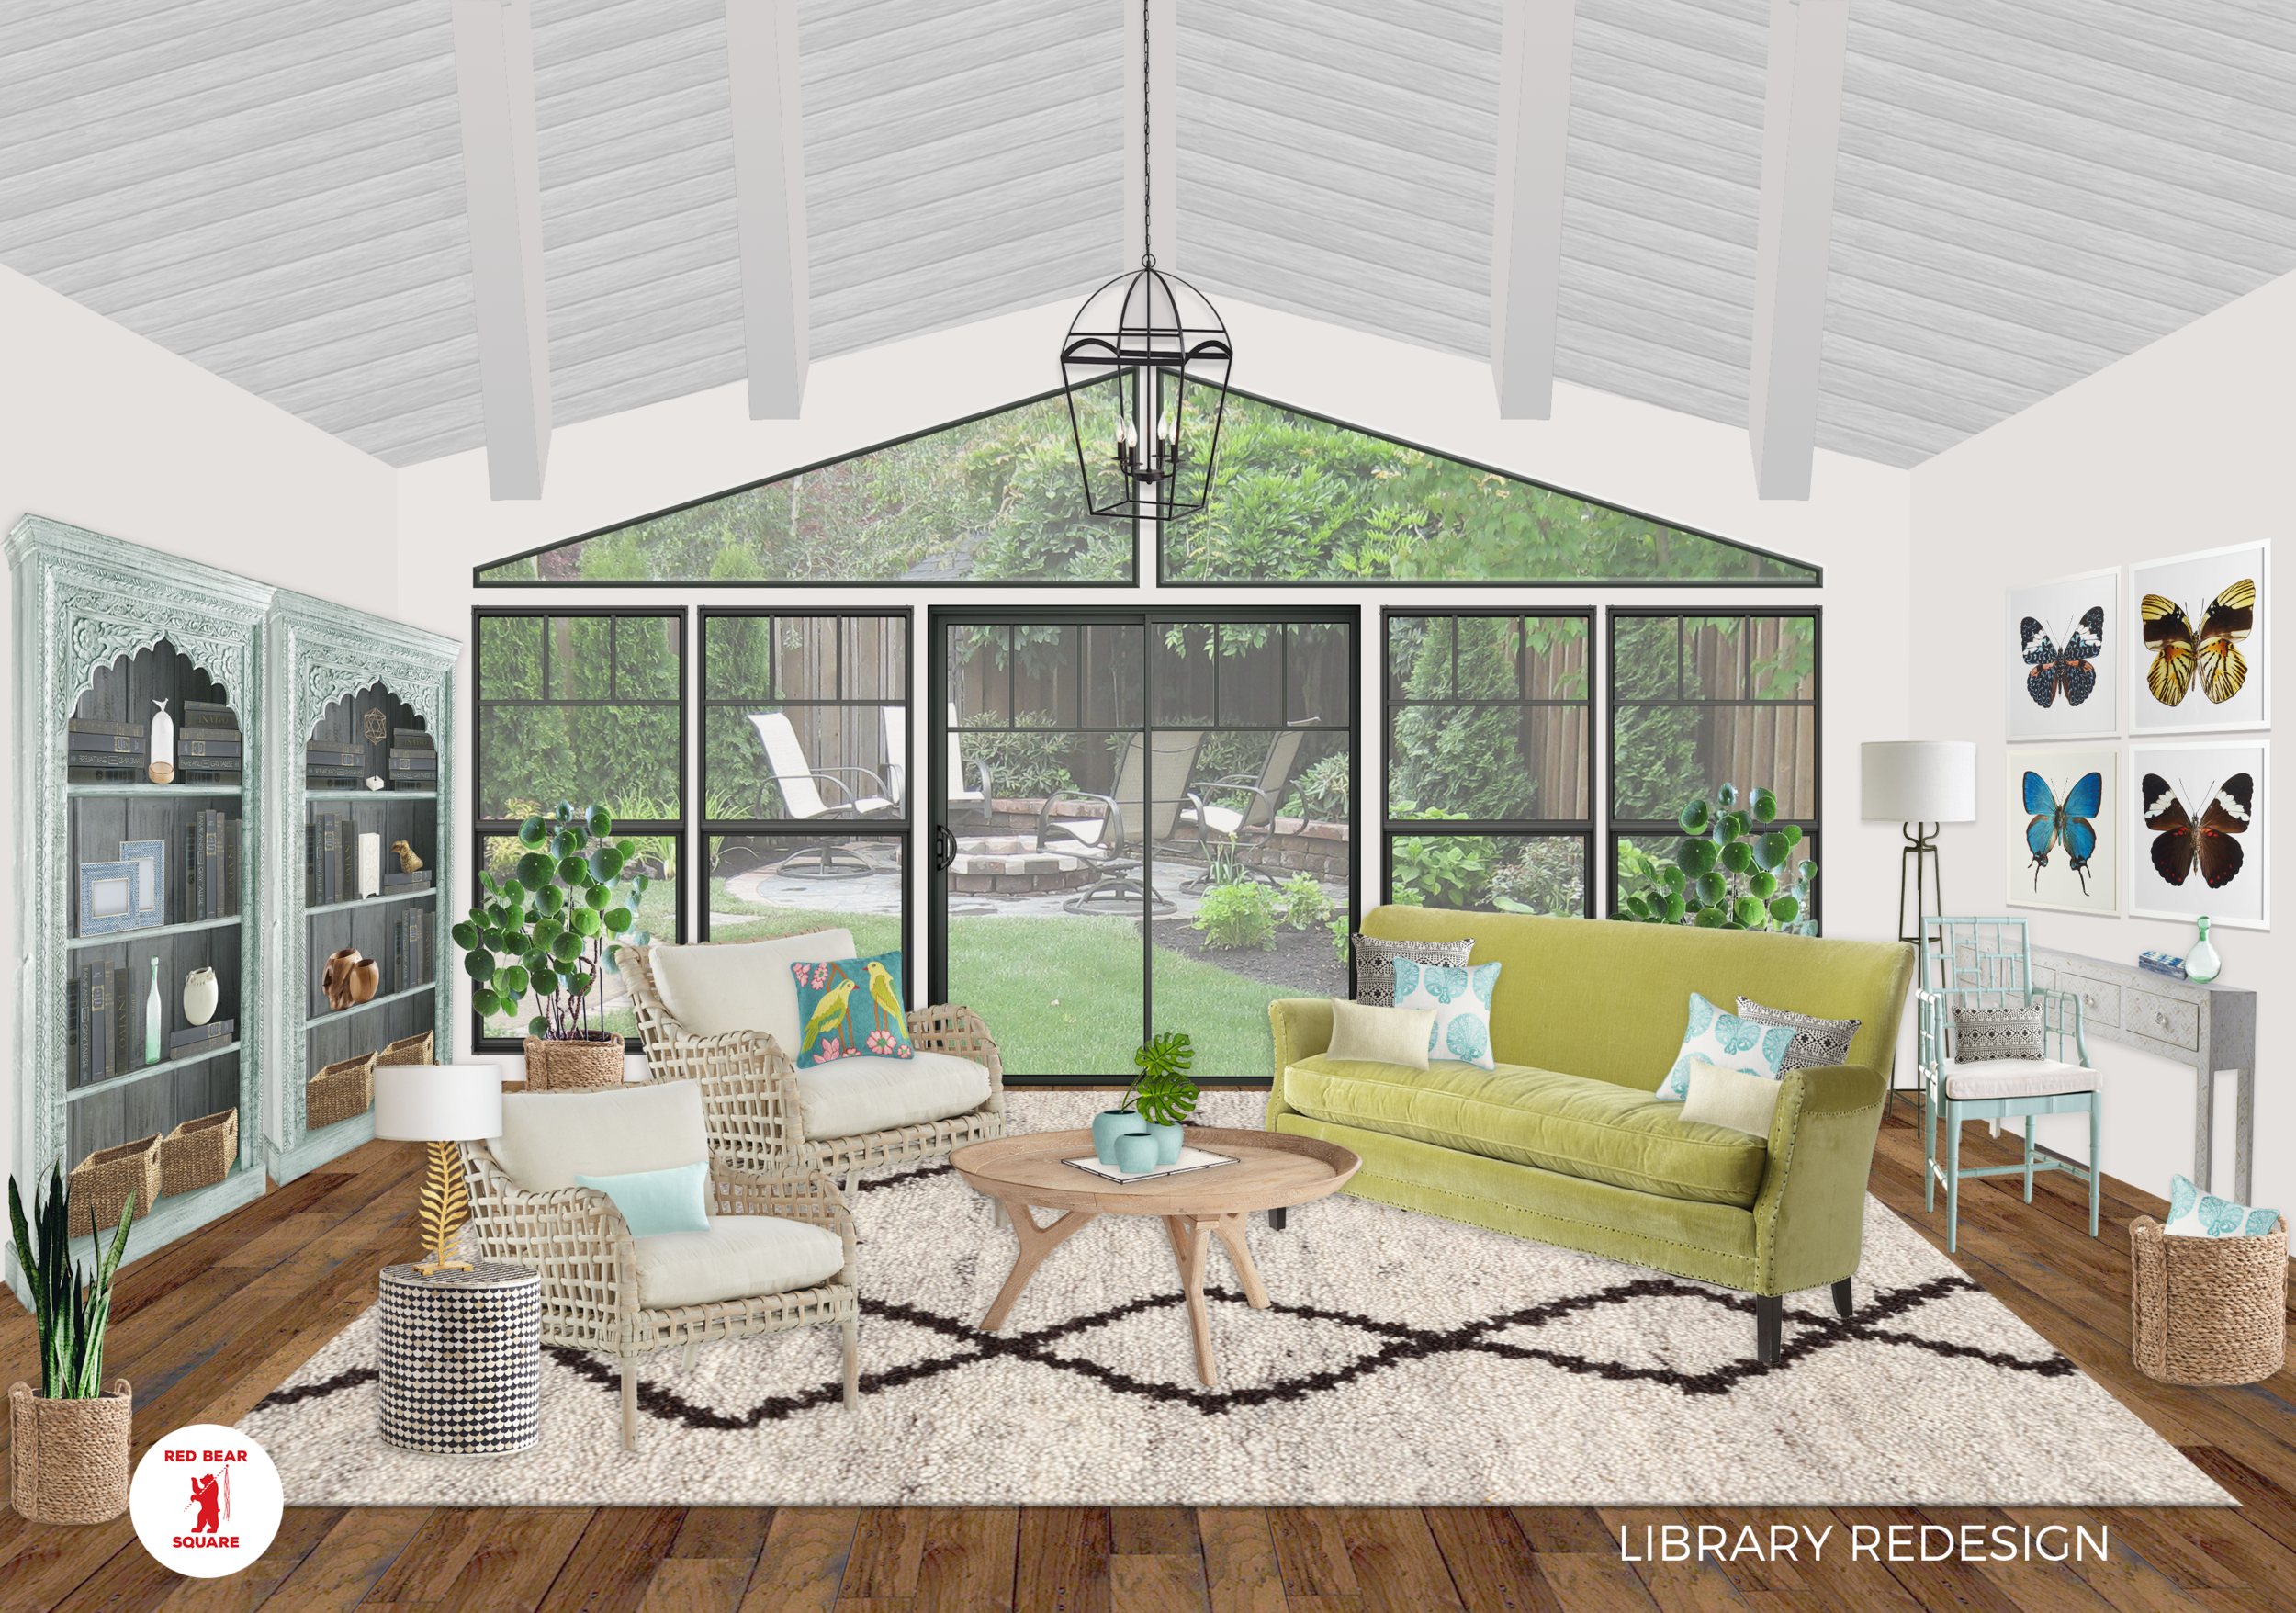 Red Bear Square Sun Room Design sm.png